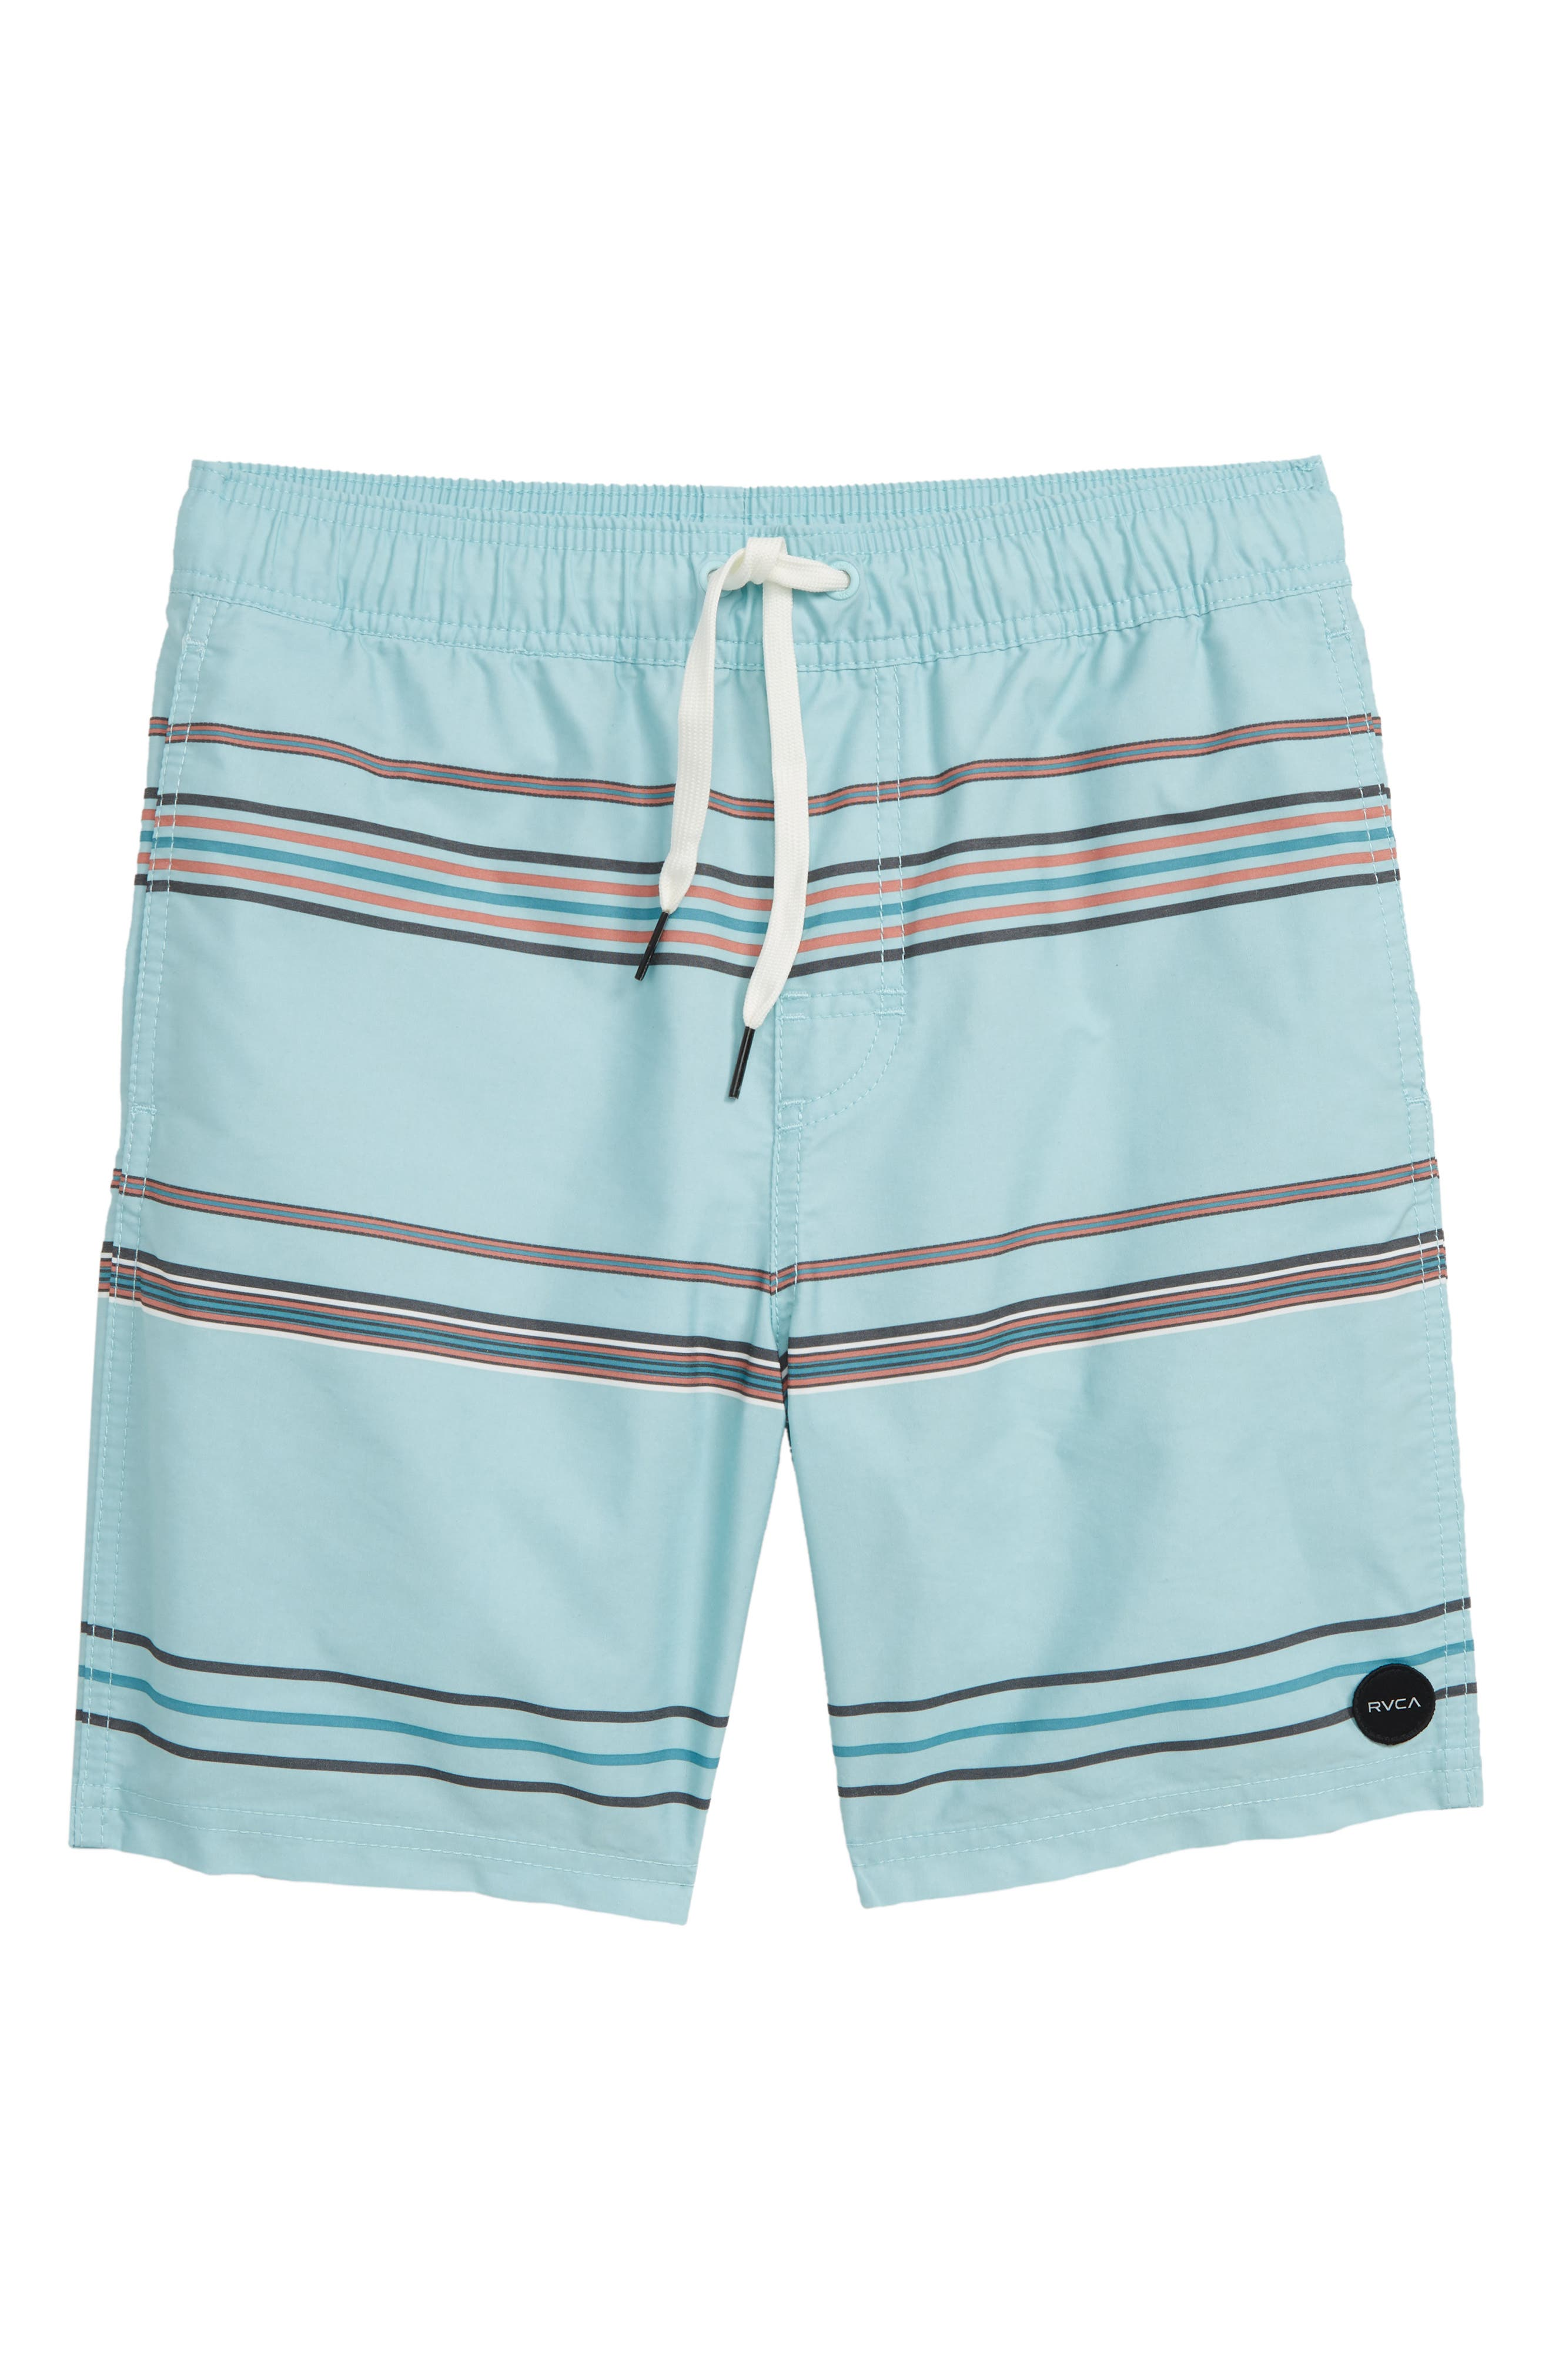 RVCA,                             Shattered Board Shorts,                             Main thumbnail 1, color,                             ETHER BLUE